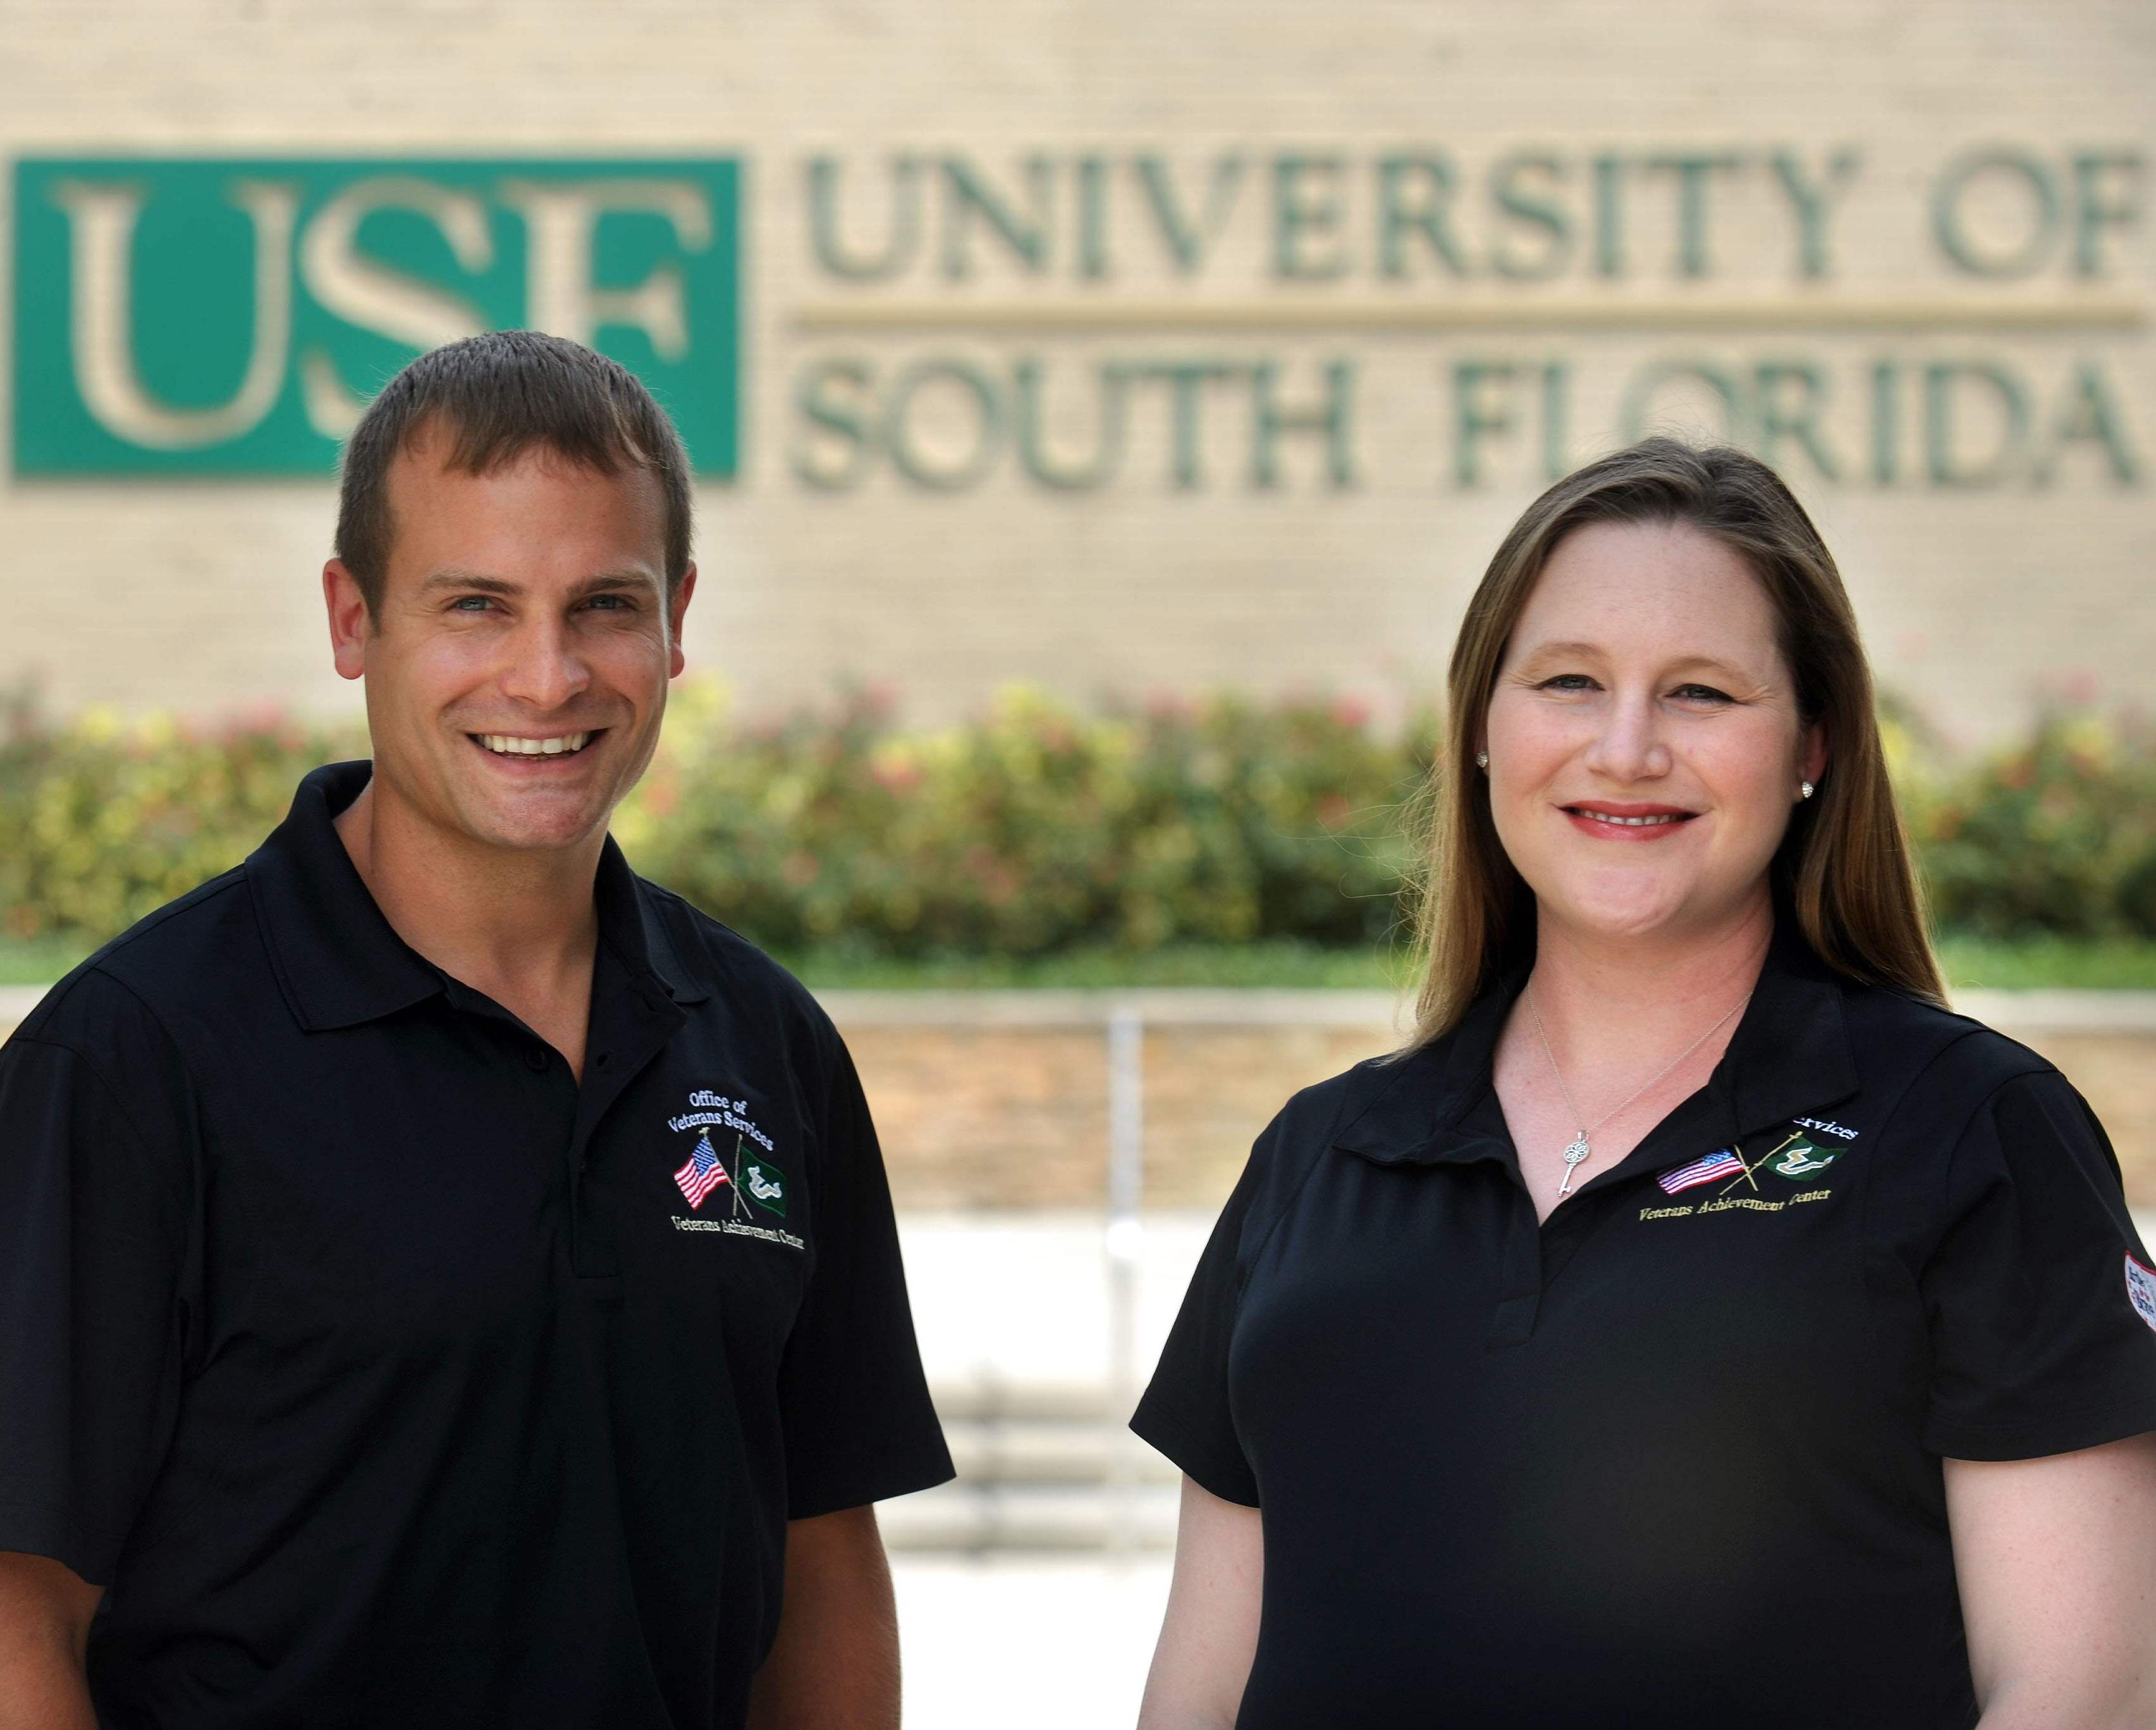 Mary Lynn Conroy and John Pasciak portraits with USF sign in background